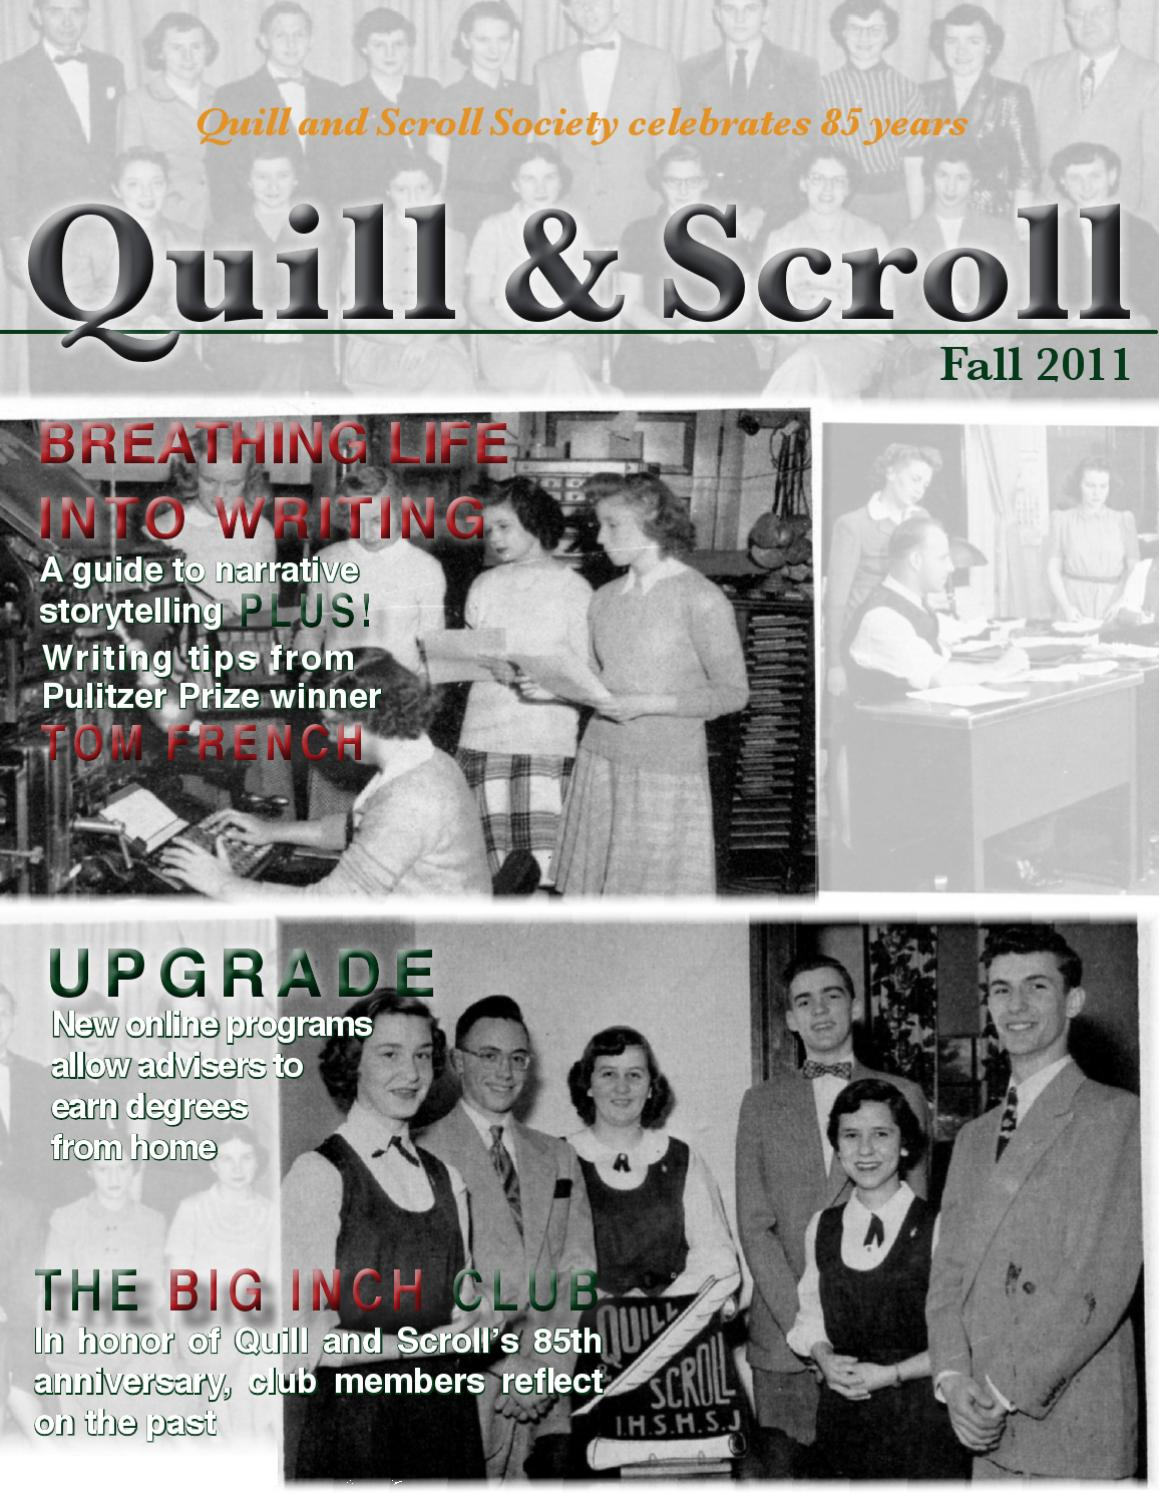 Quill & Scroll Fall 2011 Magazine by Quill and Scroll